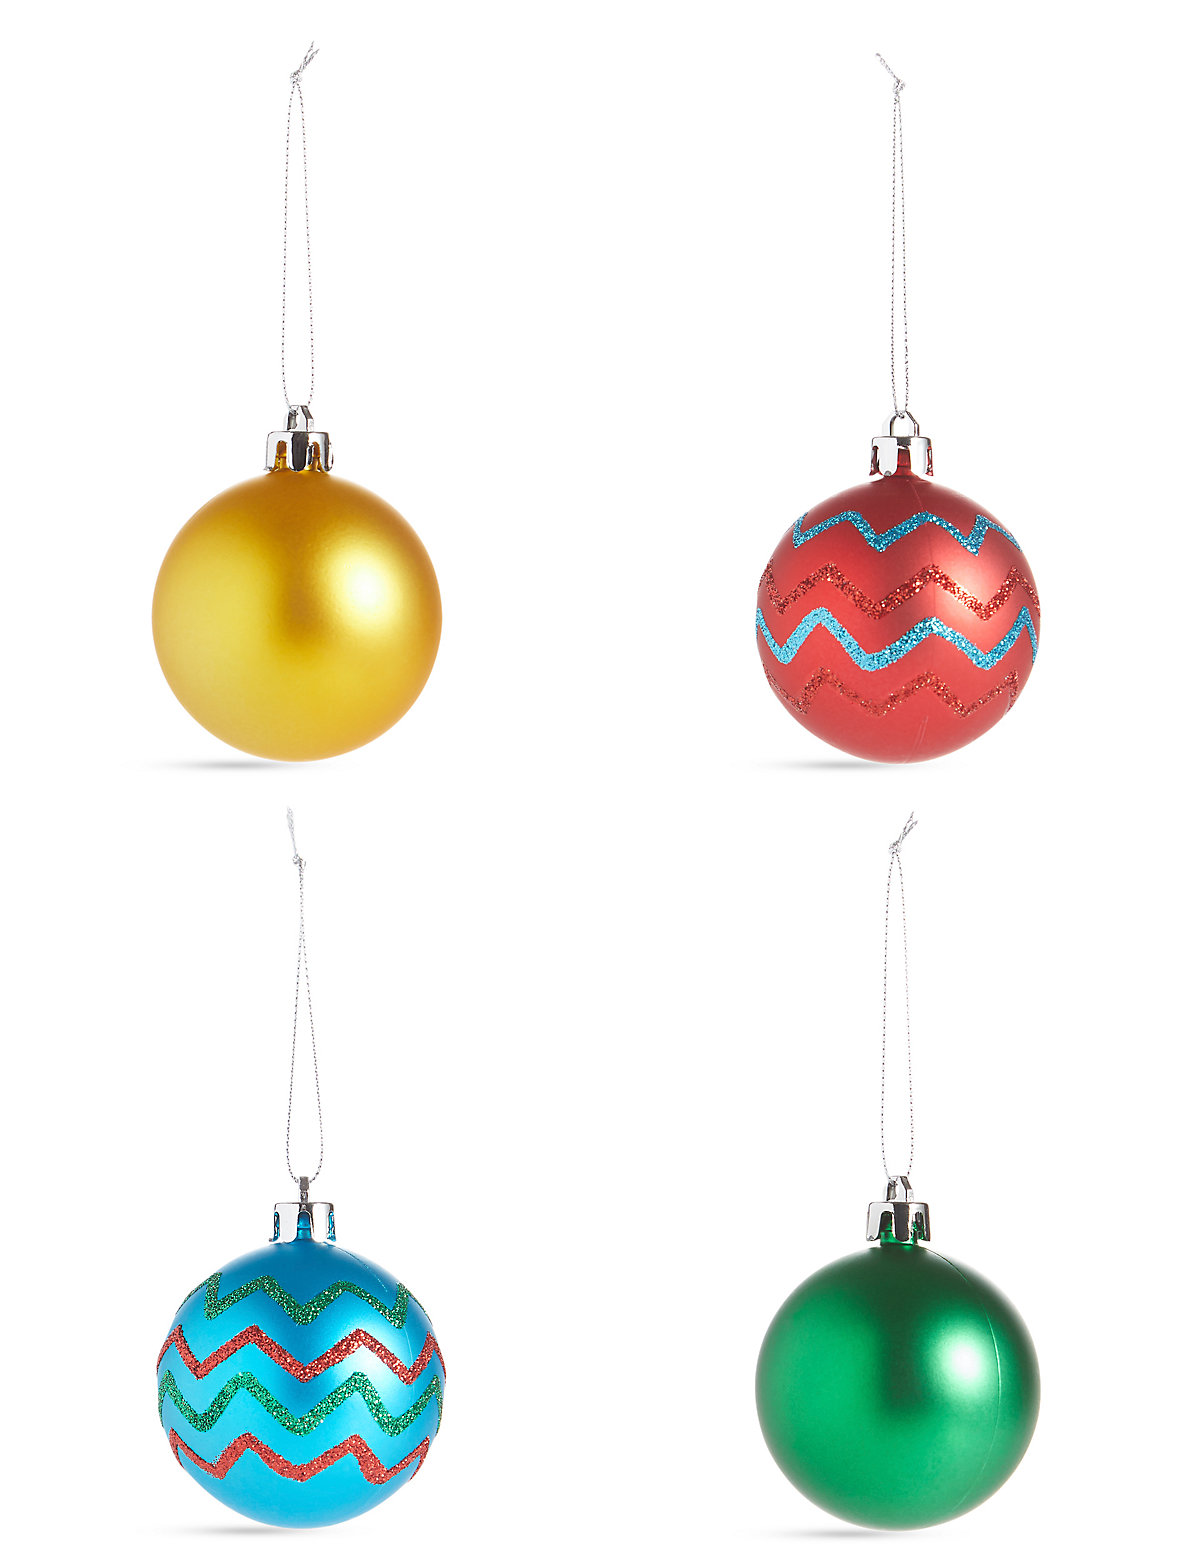 Image of 12 Pack Bright Shatterproof Baubles